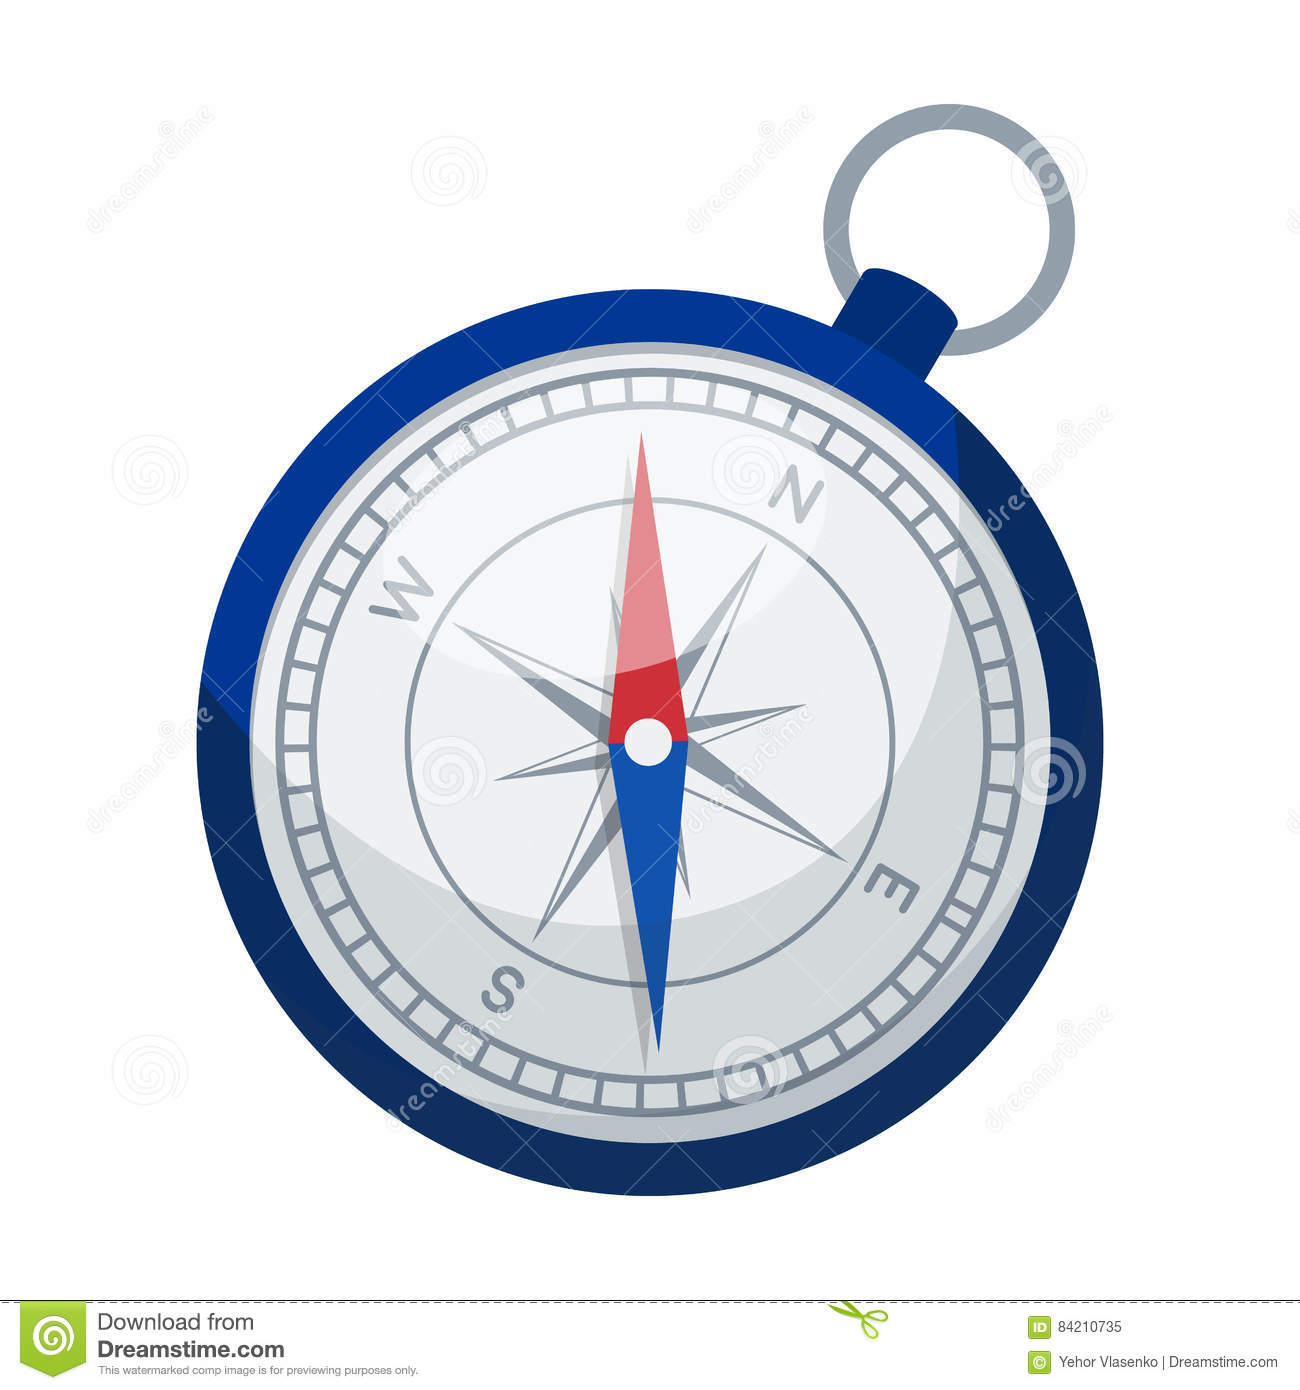 Compass icon in cartoon style isolated on white background. Rest and travel symbol